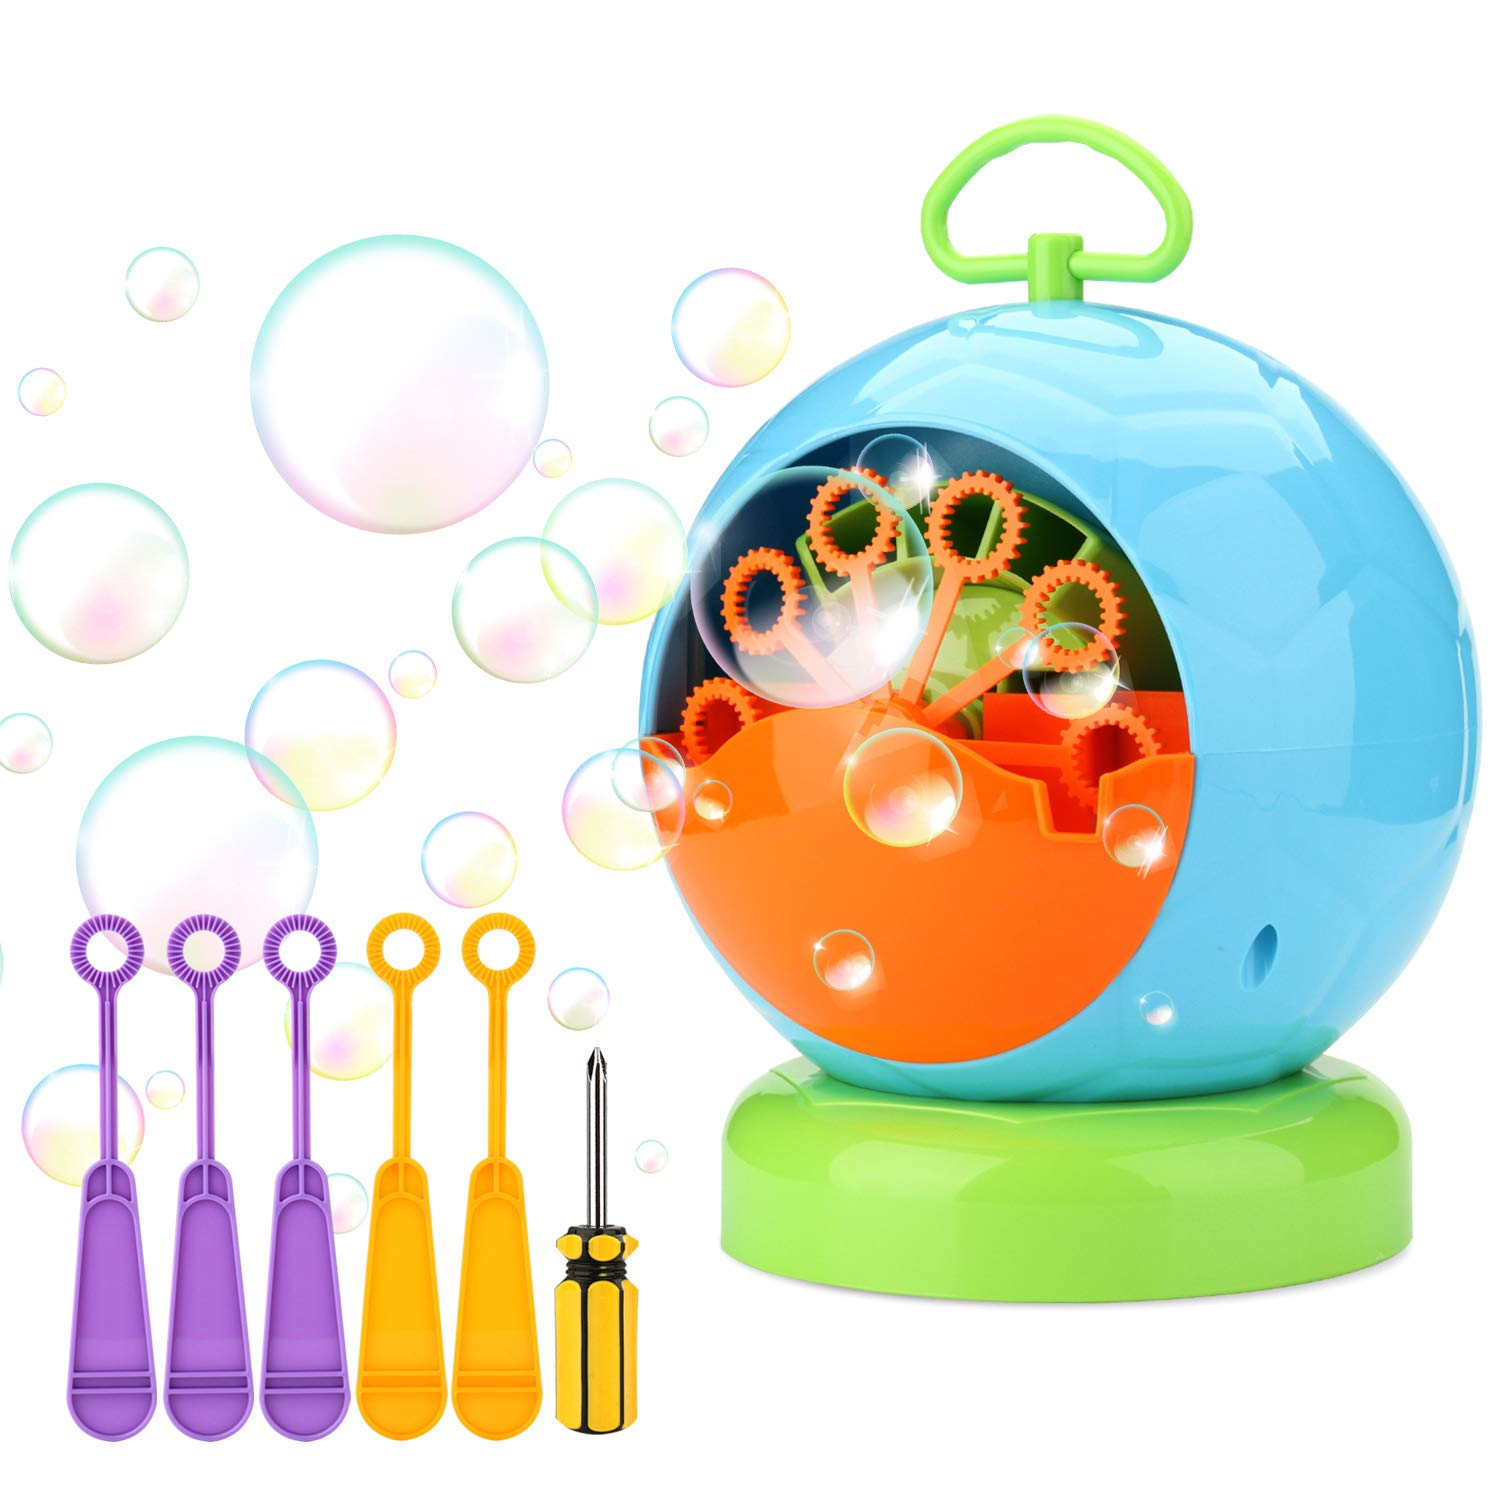 Bubble Machine, AGPtEK Automatic Bubble Machine Toy for Kids, Football Shape Blowing Over 500 Bubbles Per Minute, Portable Bubble Blower with 1 Screwdriver and 5 Extra Bubble Wands for Indoor & Outdoo